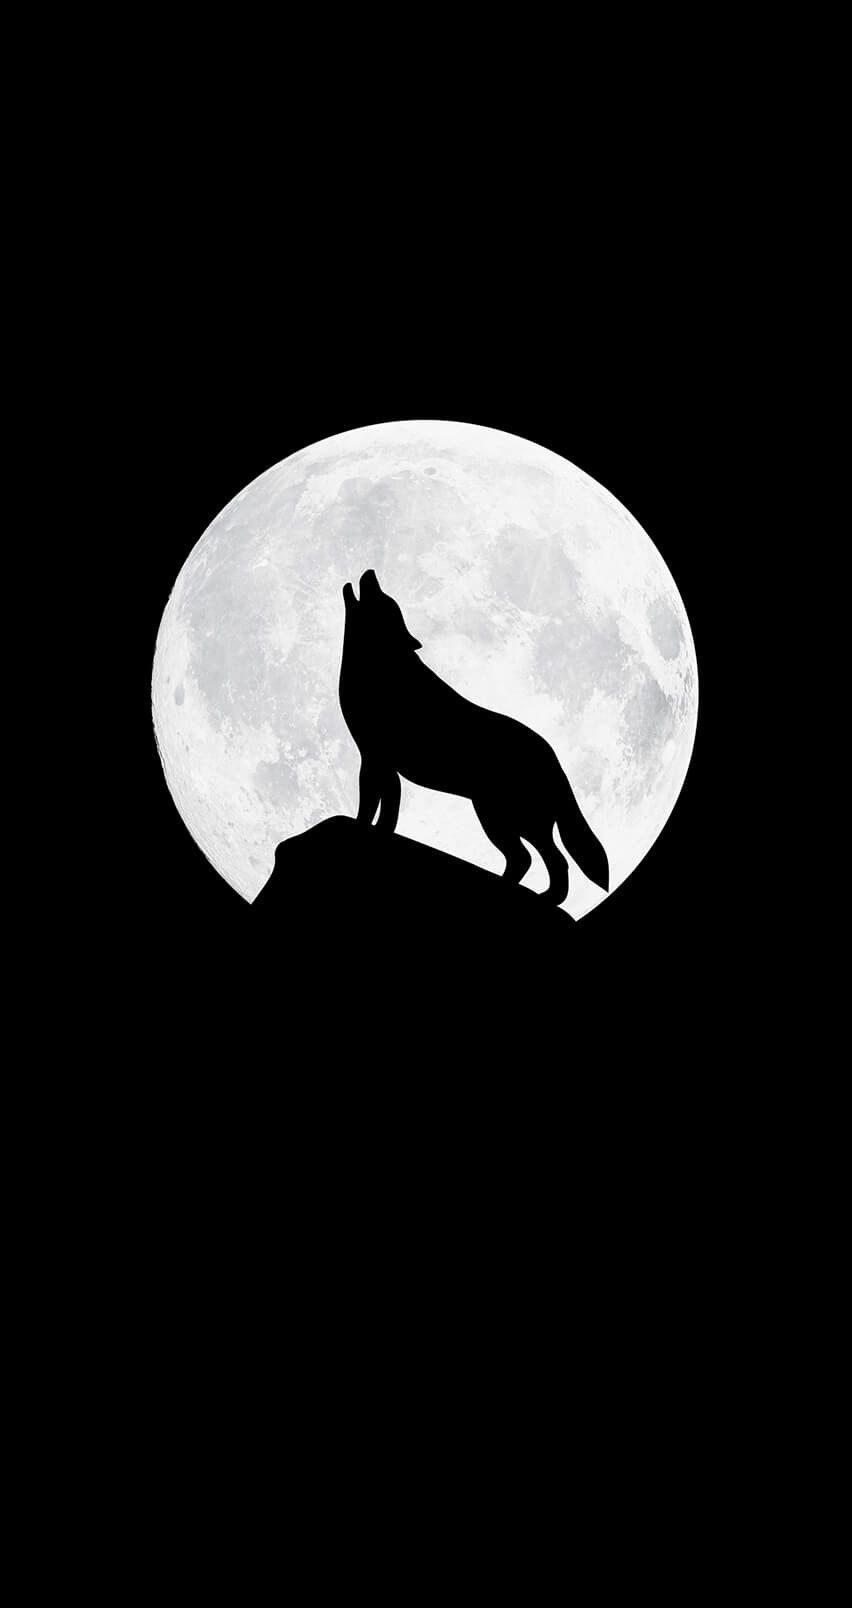 Wolf Background, Black Wallpaper Iphone Dark, Minimalist - Wolf Phone Wallpaper 4k , HD Wallpaper & Backgrounds